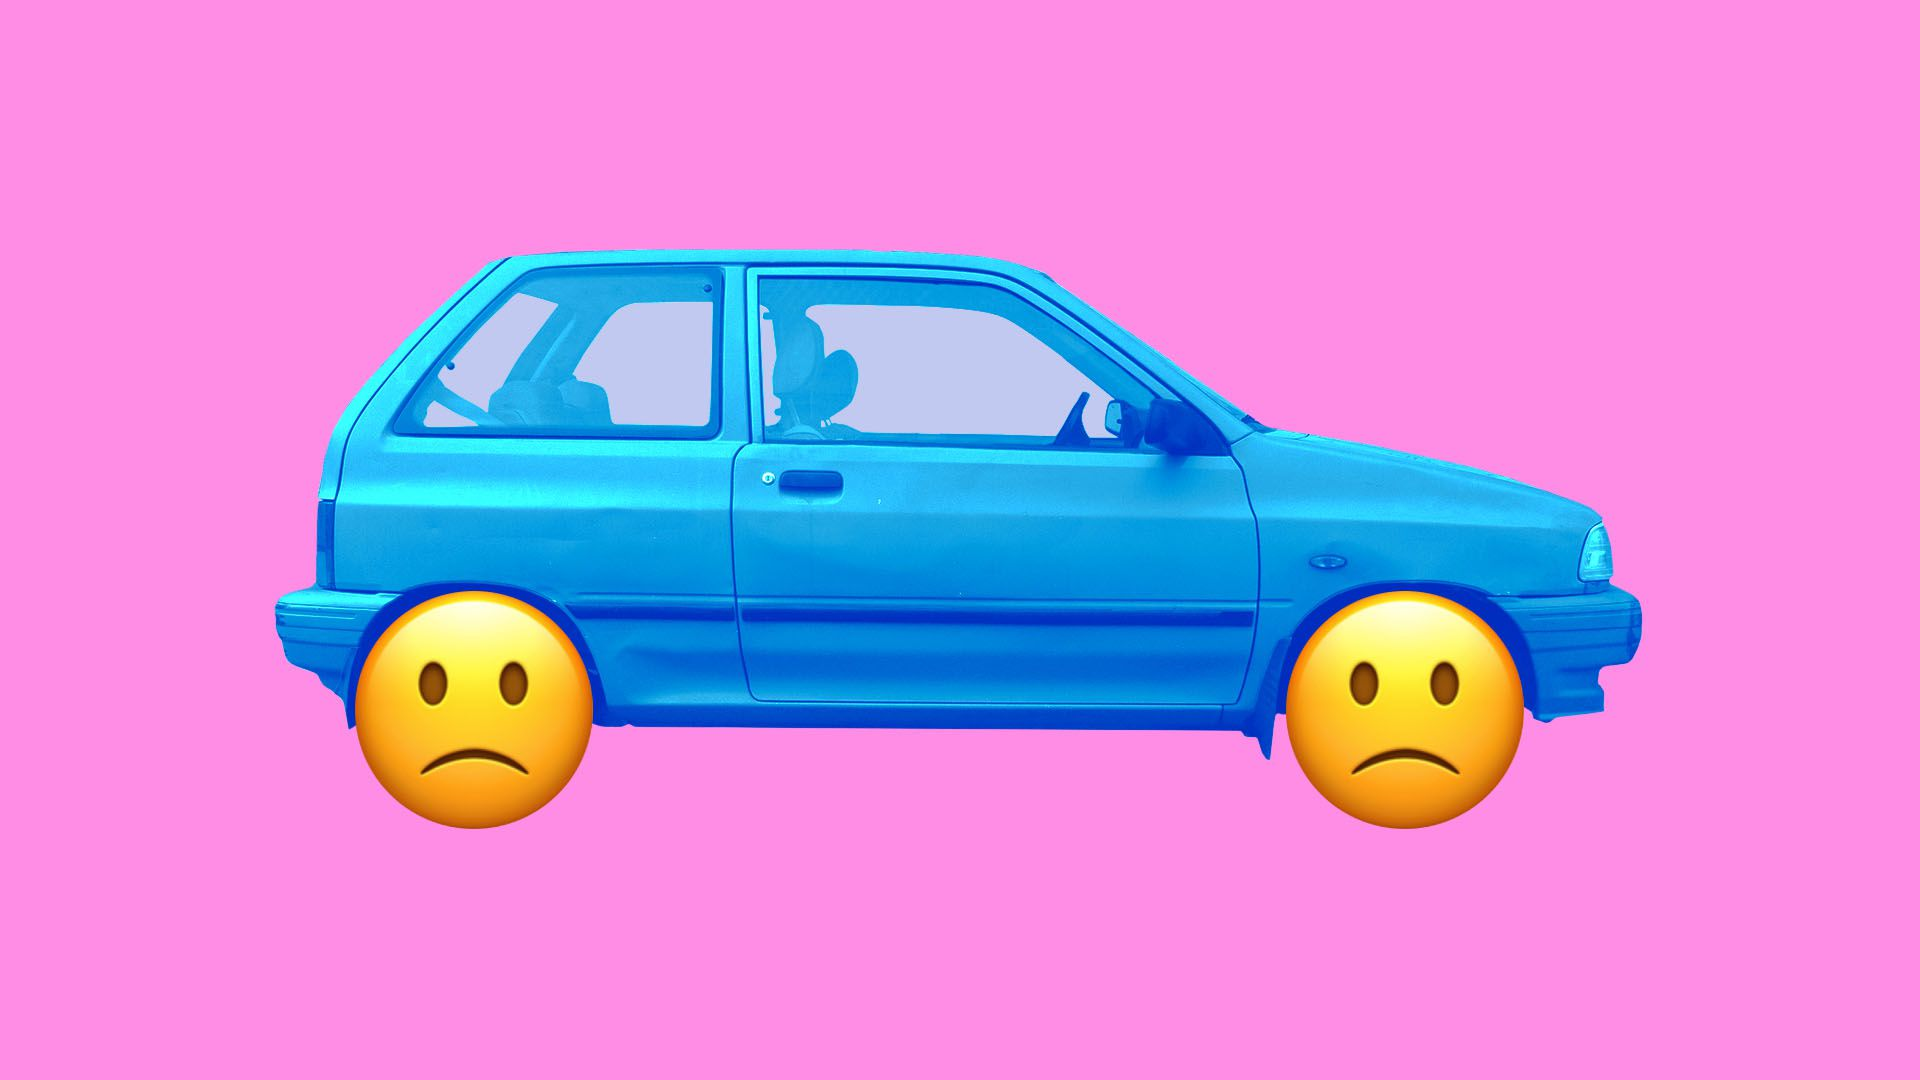 Illustration of a car with sad emojis instead of wheels